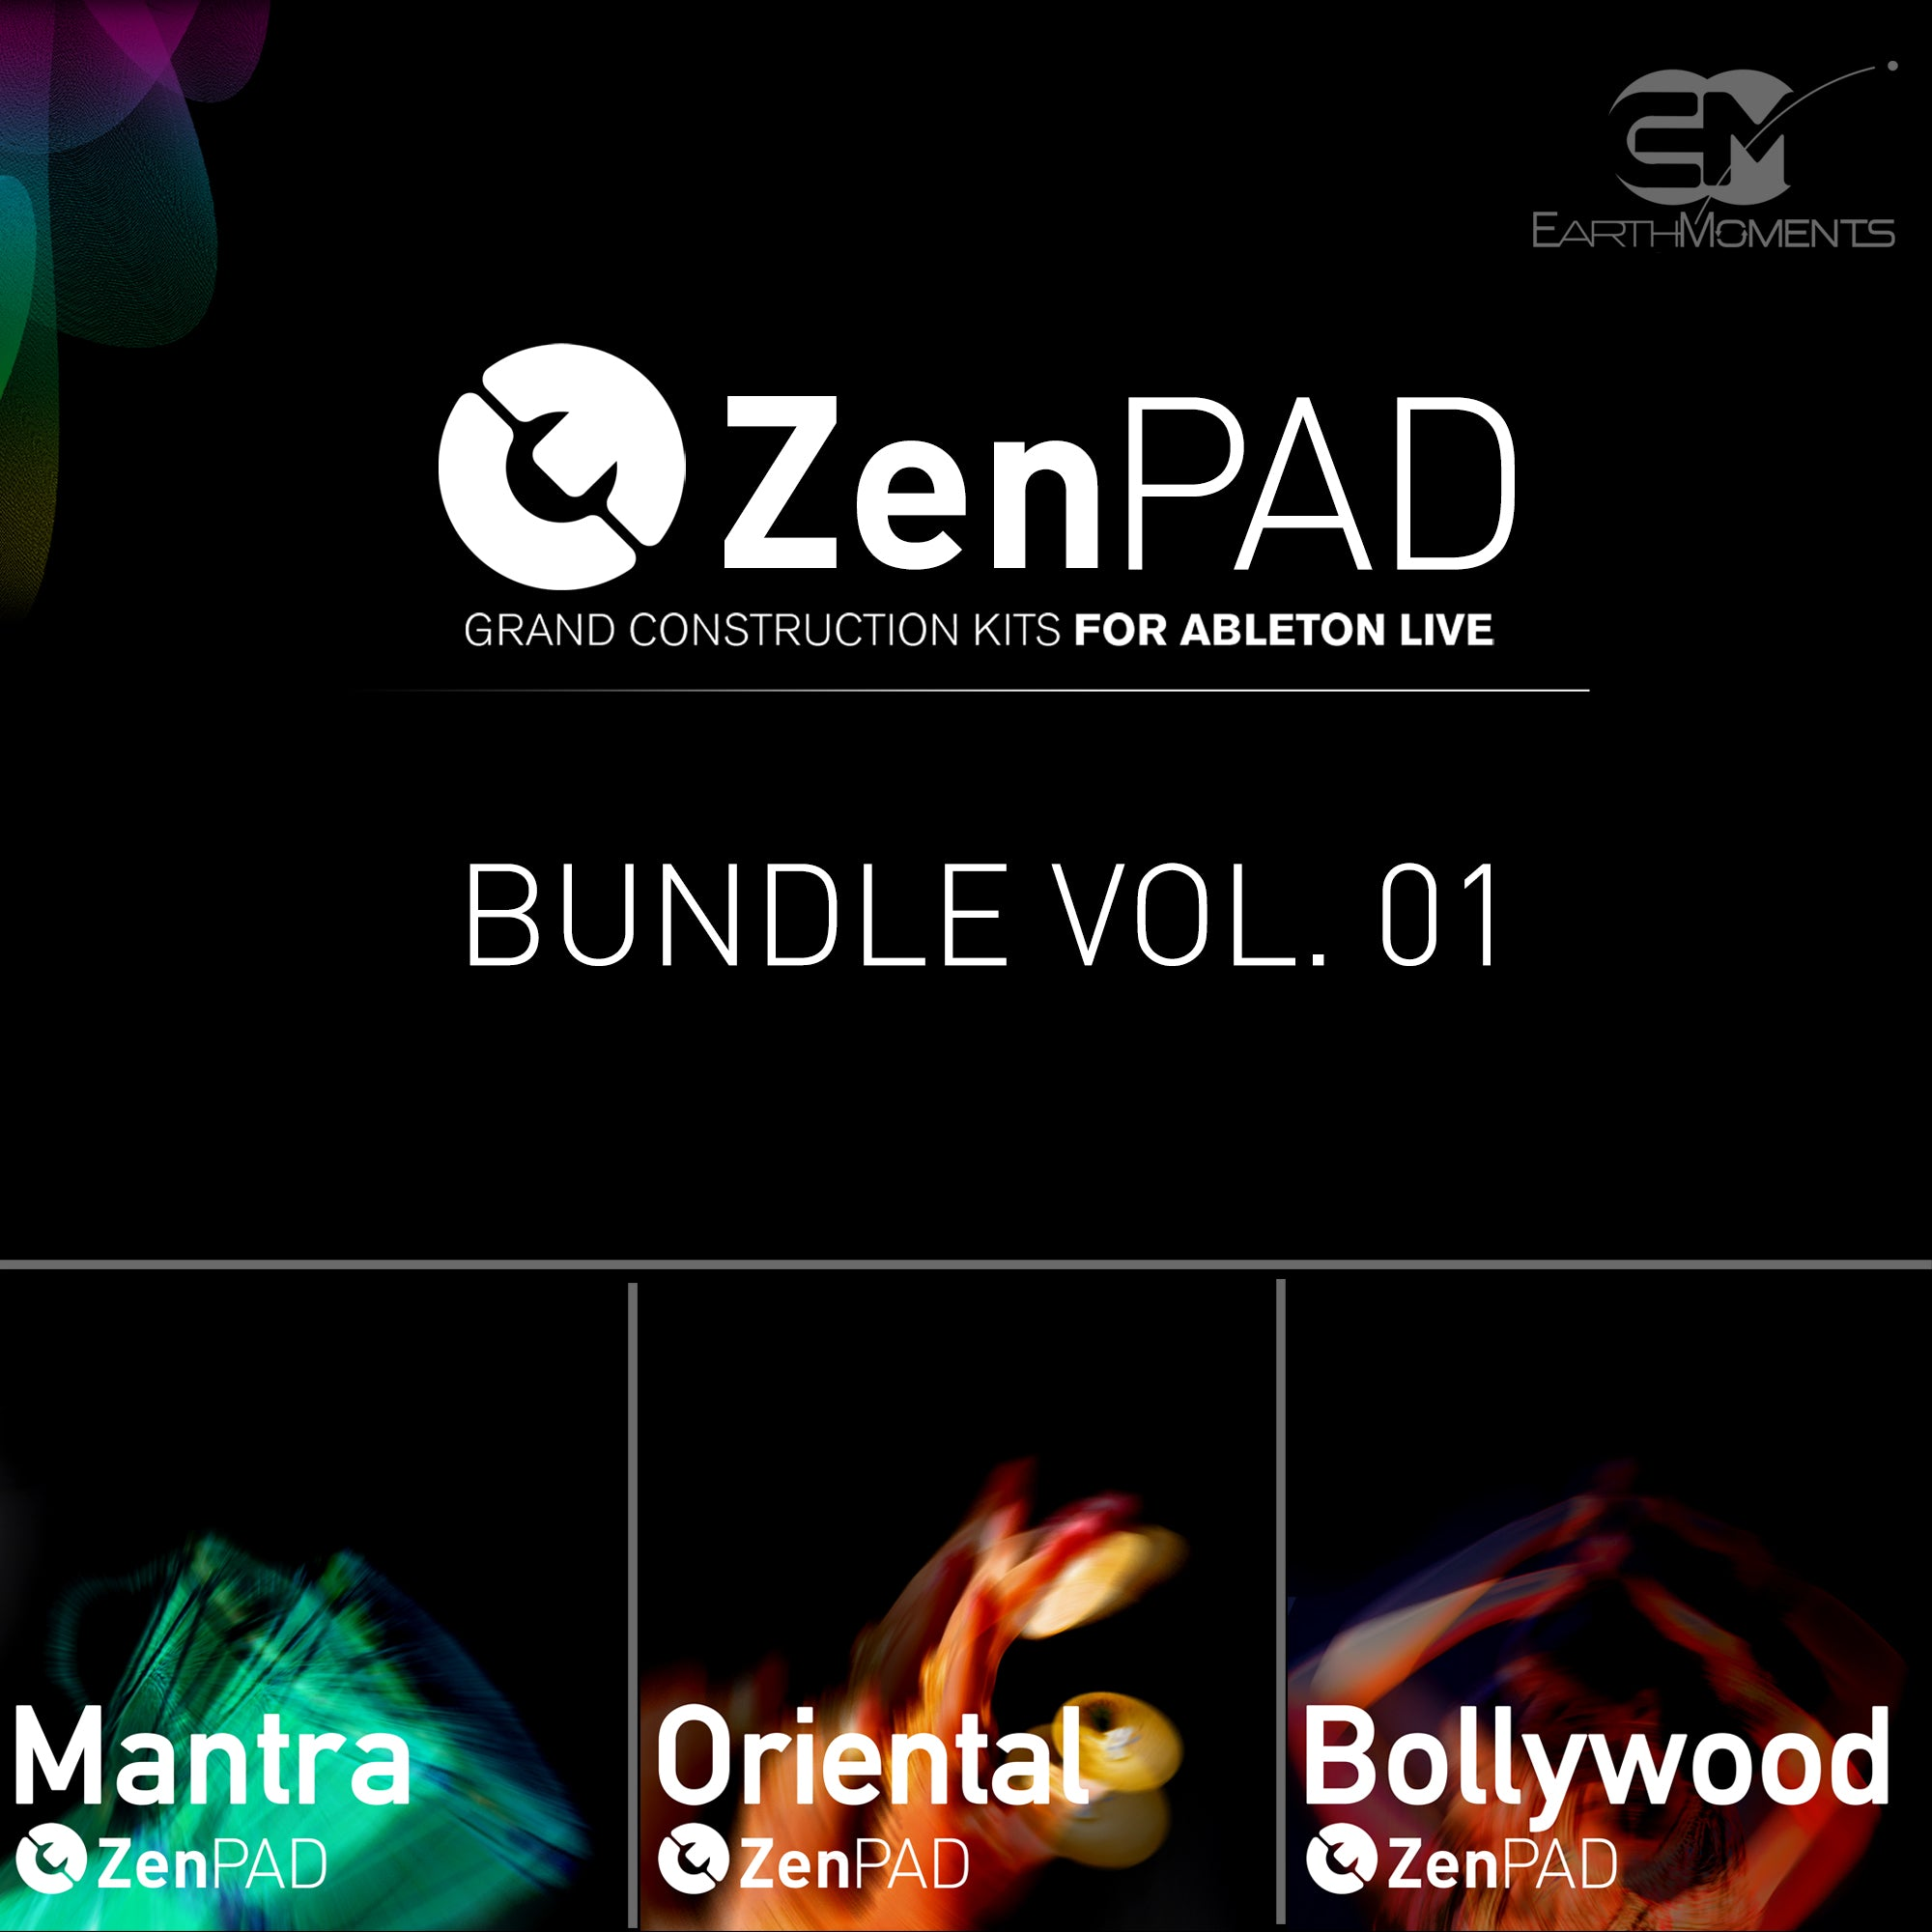 ZenPad Bundle Vol. 01 / Grand Construction Kits for Ableton Live